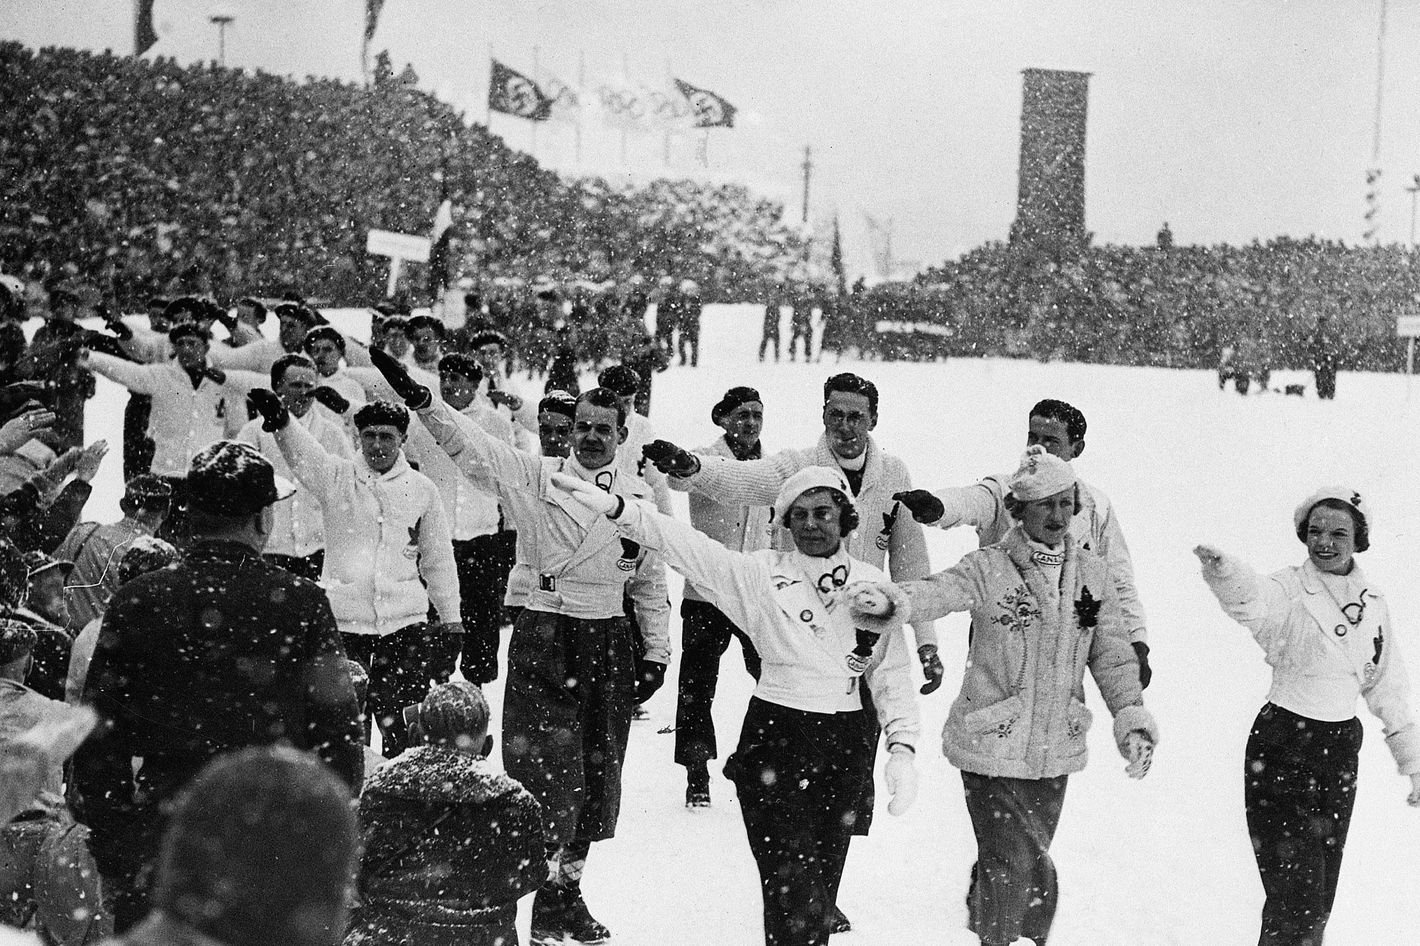 So this happened hitlers winter olympics in photos biocorpaavc Image collections